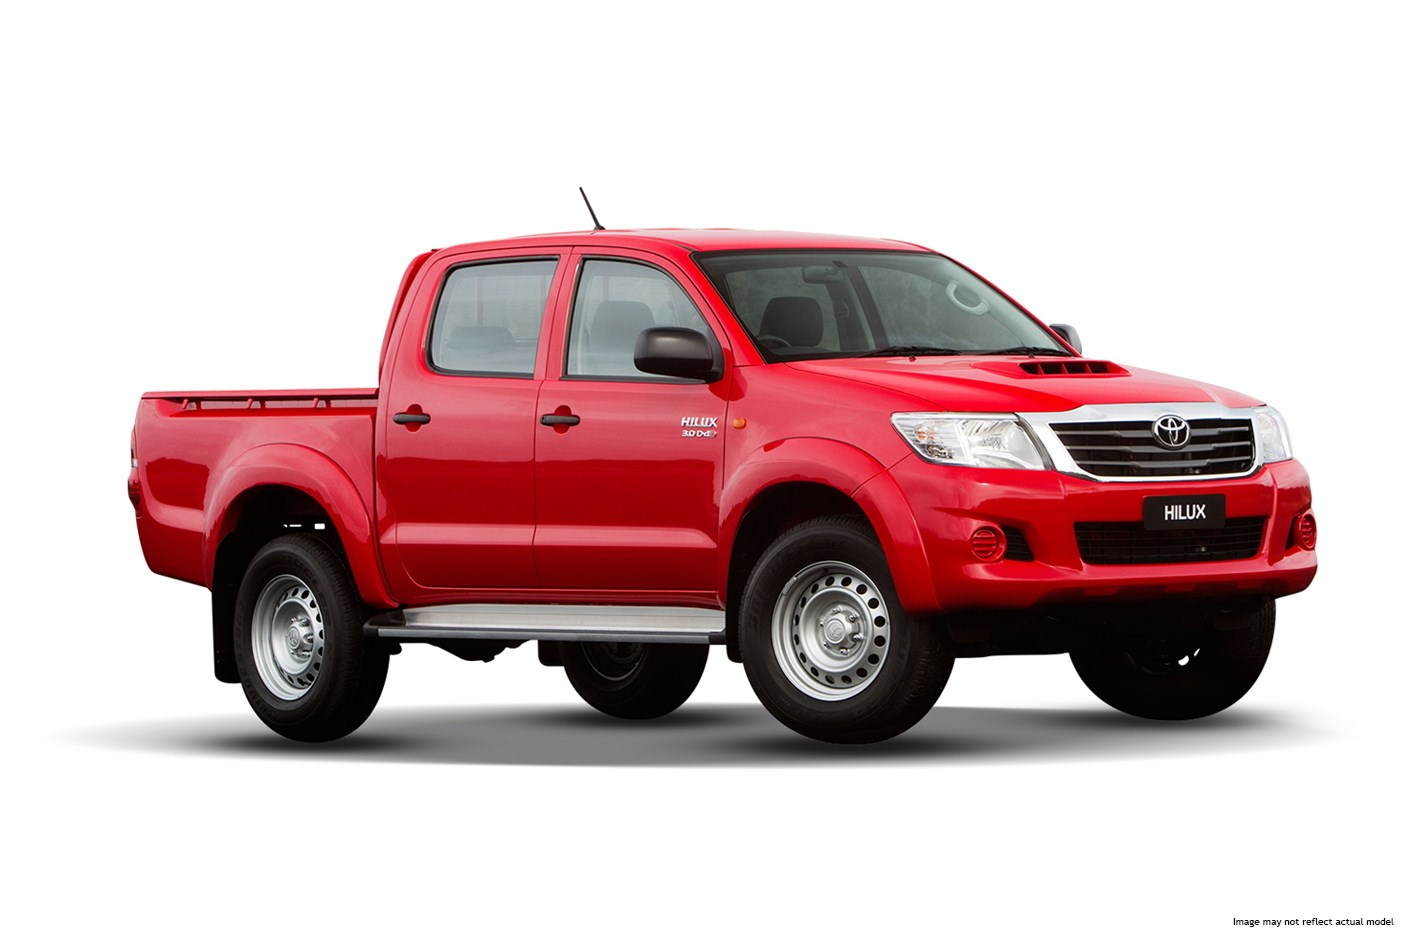 2016 toyota hilux sr 4x4 cab chassis review caradvice - 2017 Toyota Hilux Sr 4x4 Dual C Chas